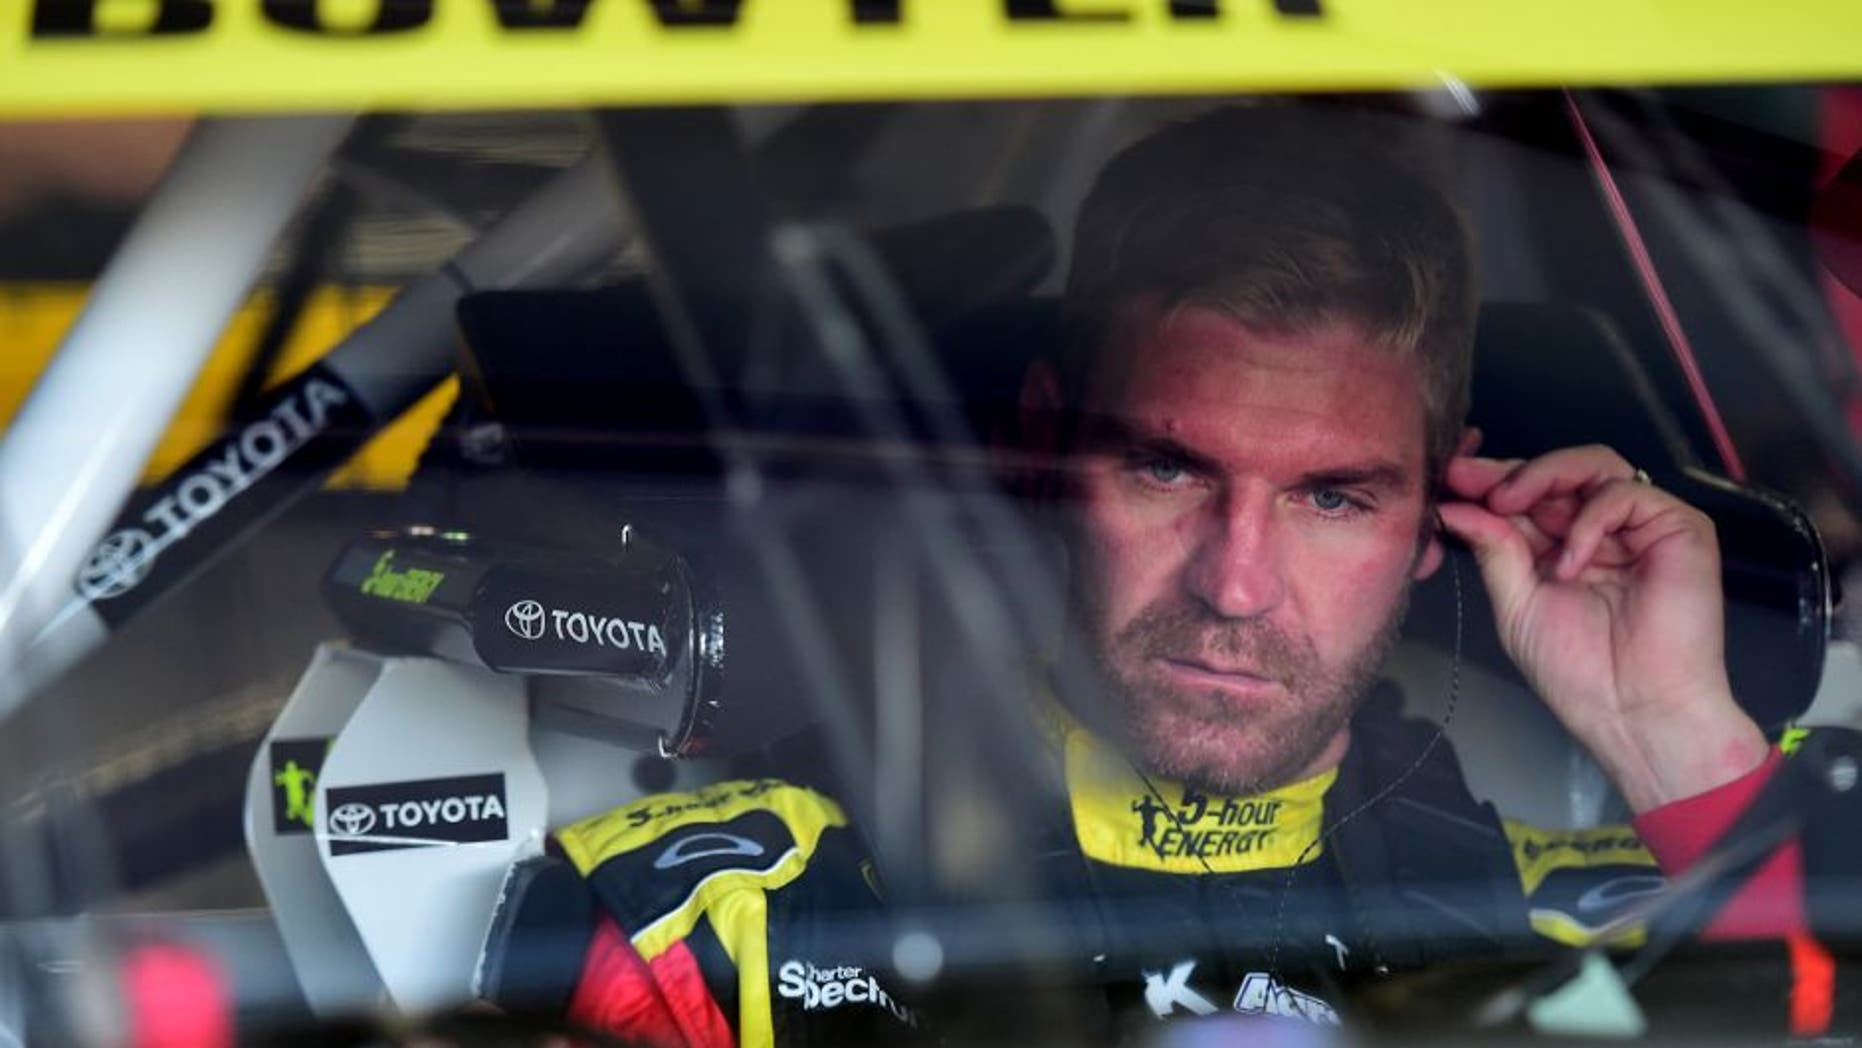 LOUDON, NH - SEPTEMBER 26: Clint Bowyer, driver of the #15 5-Hour Energy Toyota, sits in his car during practice for the NASCAR Sprint Cup Series Sylvania 300 at New Hampshire Motor Speedway on September 26, 2015 in Loudon, New Hampshire. (Photo by Jared C. Tilton/Getty Images)